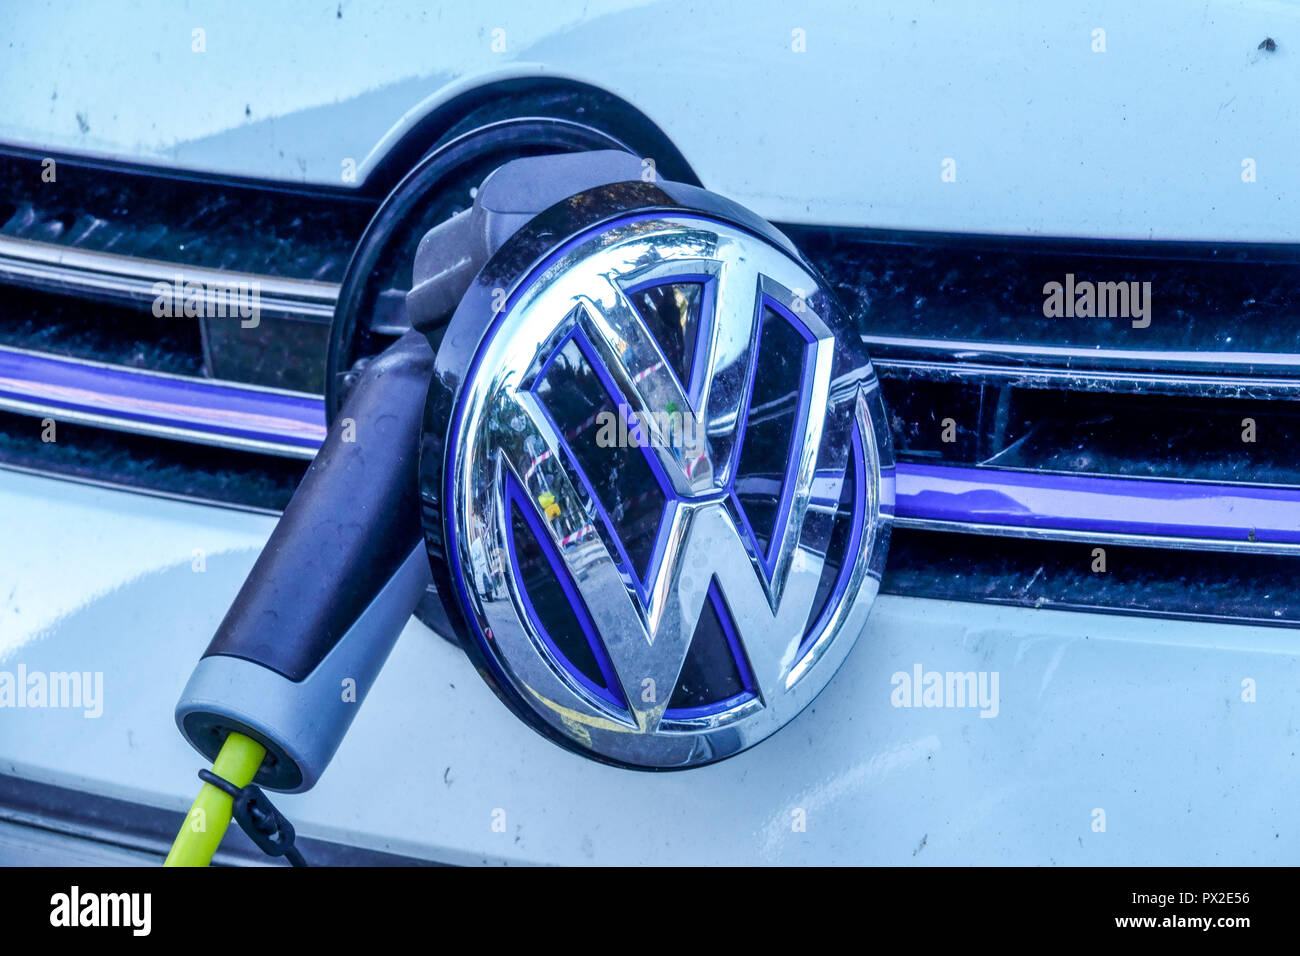 VW car charging, electric car charger, supply plugged - Stock Image